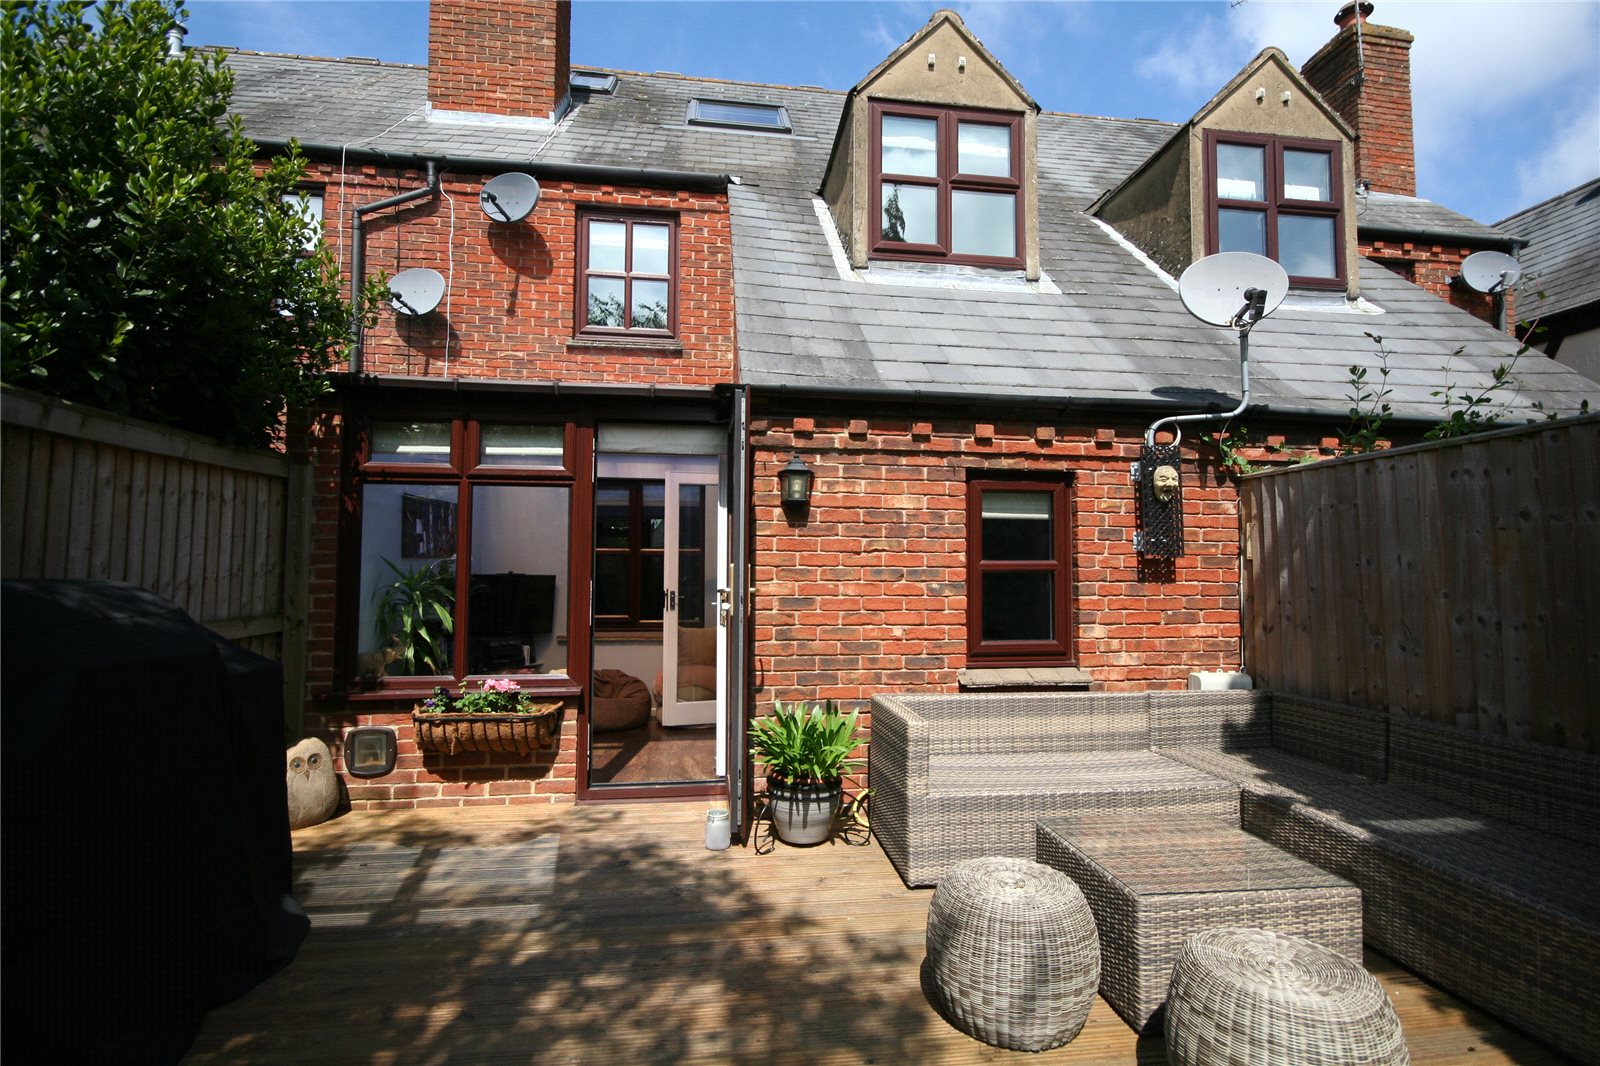 Cj Hole Cheltenham 4 Bedroom House For Sale In Furlong